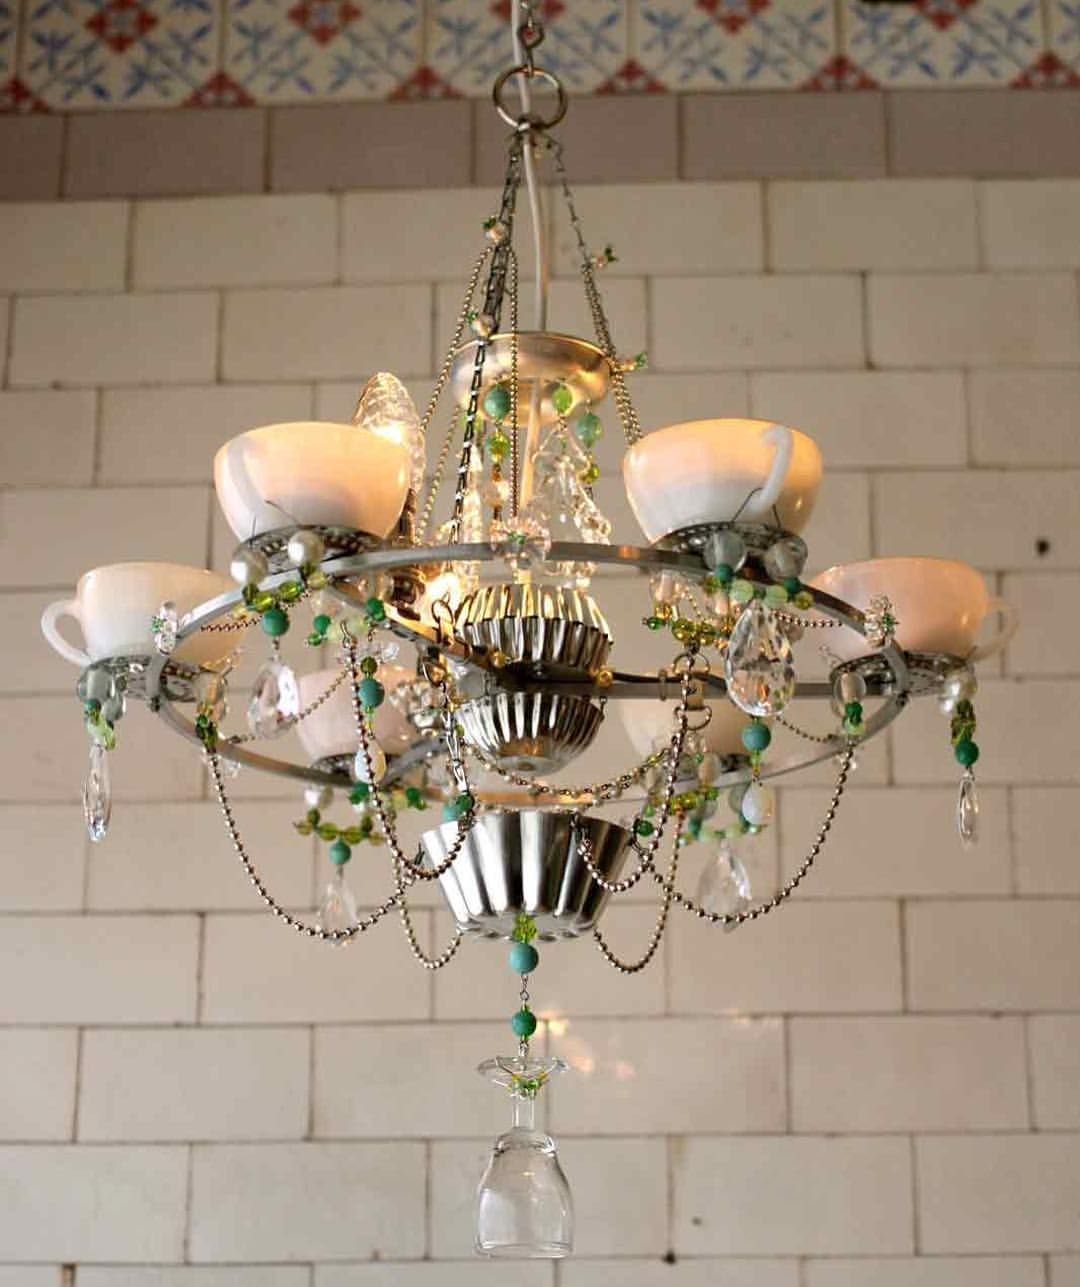 Opal Cup Chandelier, old dairy tiles on the background.